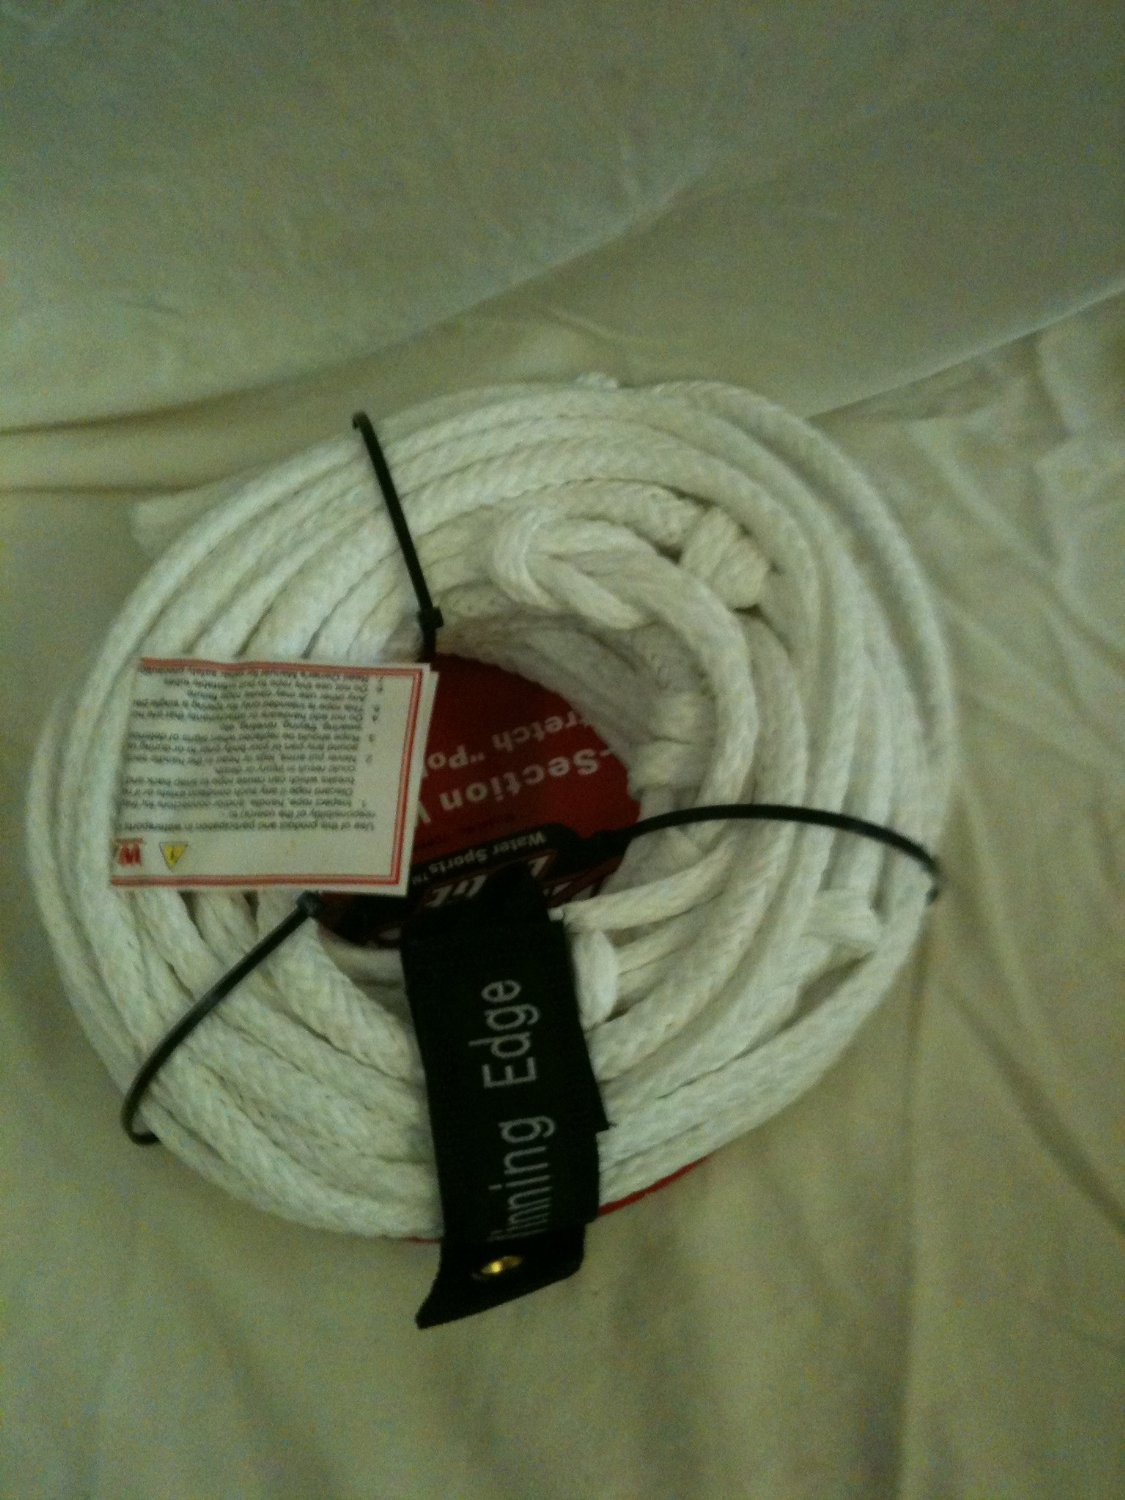 "Winning Edge White 70' 5-Section Wakeboard Low Stretch ""Ply E"" Tow Line"